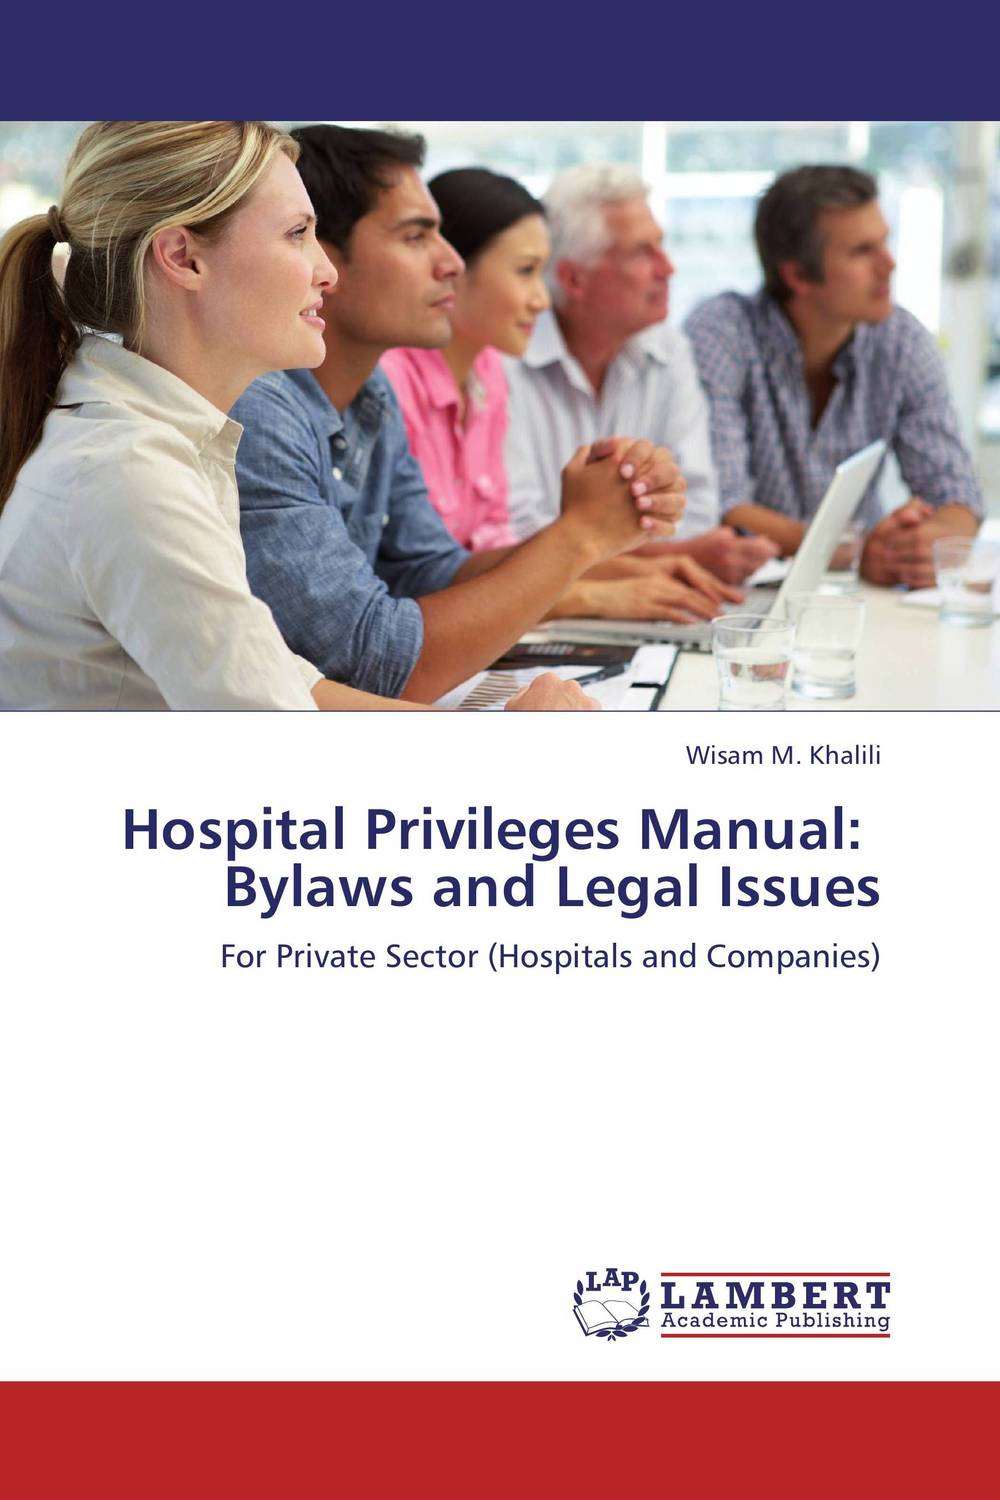 Hospital Privileges Manual: Bylaws and Legal Issues cdu bore 6 32 stroke 5 50d free mount cylinder double acting single rod more types refer to form